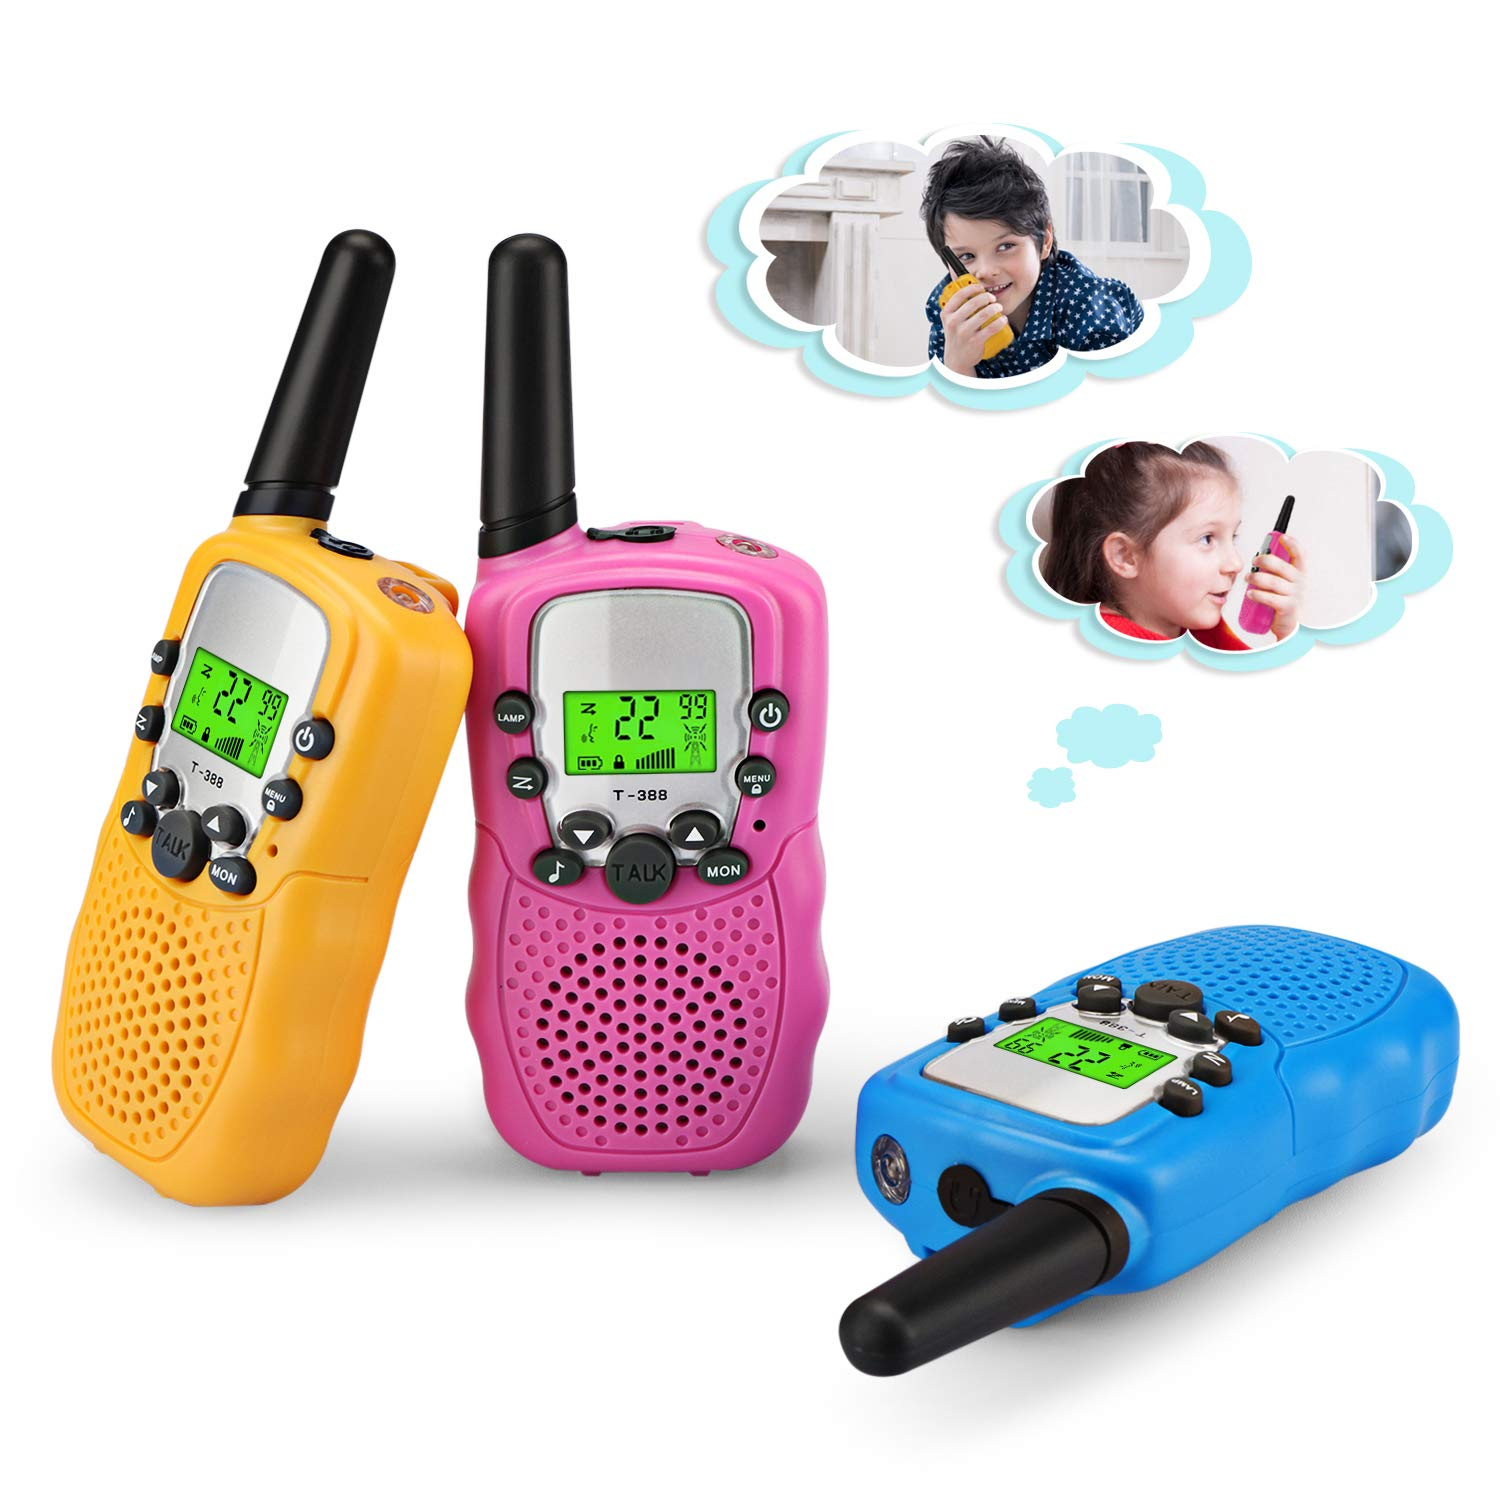 Zhenhao Walkie Talkies for Kids 3 Packs - 22 Channels Two Way Radio 3 Miles Long Range Outdoor Toys with 3 Earpieces and 3 Lanyards for Boys Girls